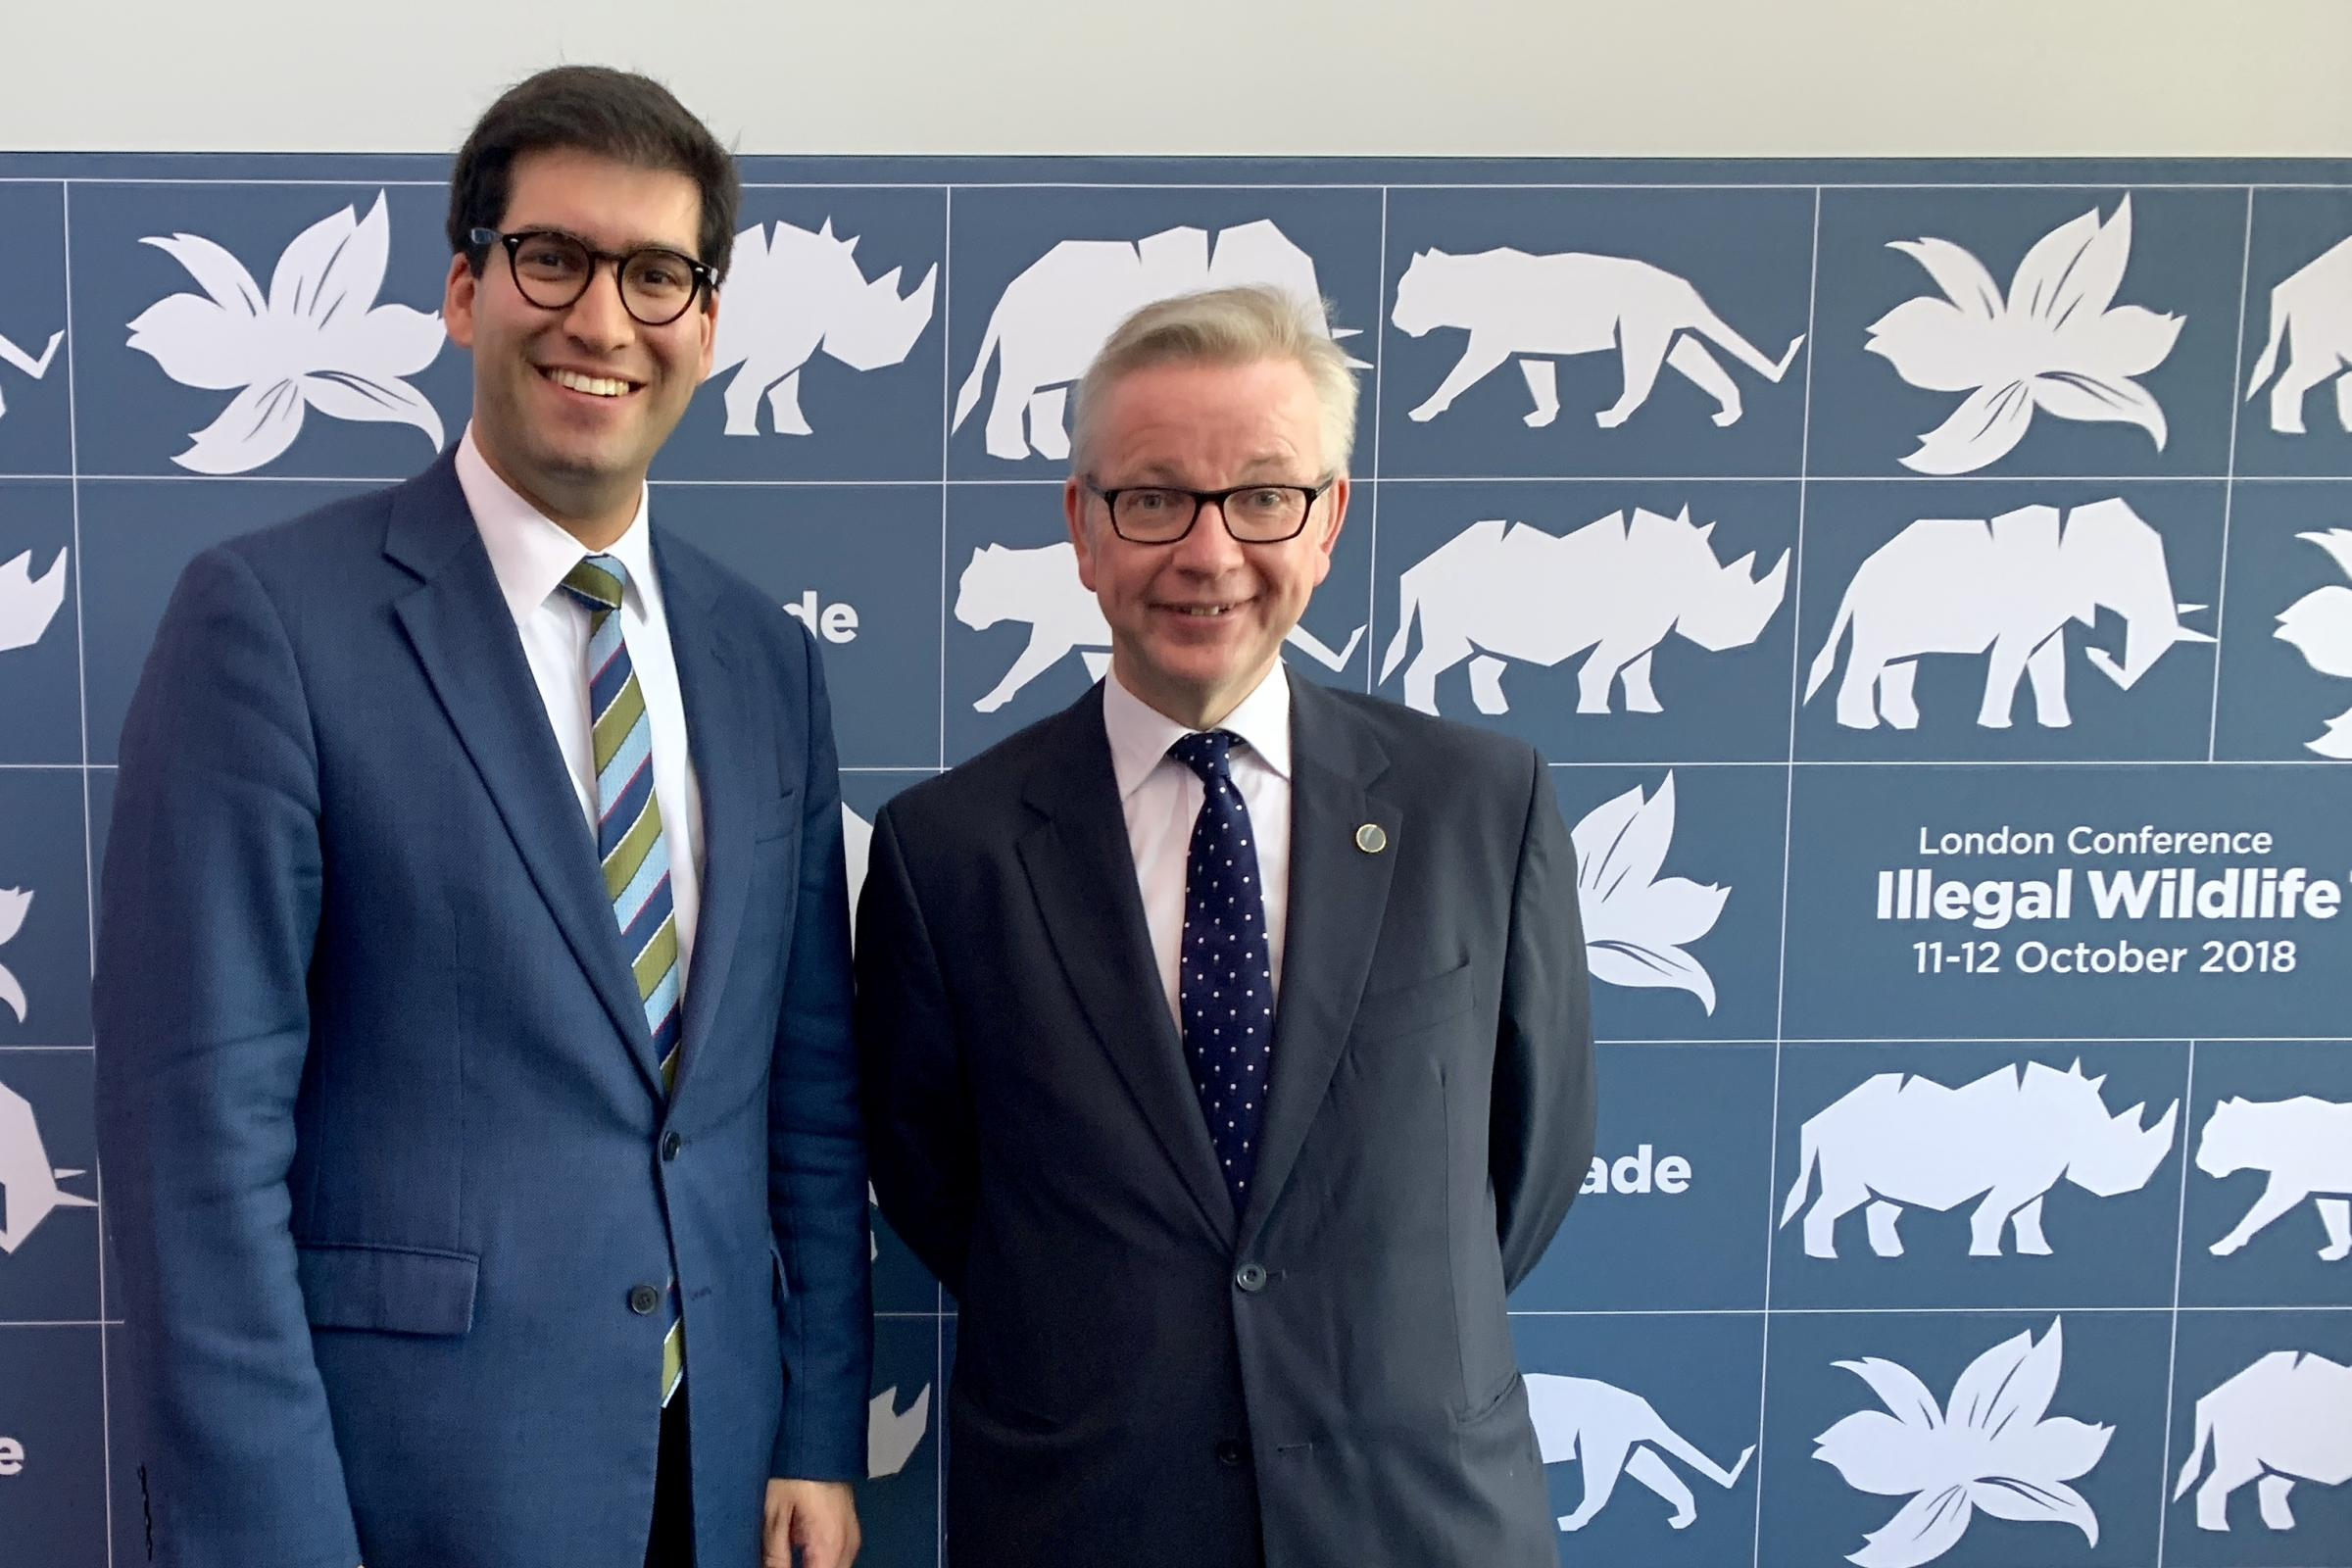 Ranil Jayawardena MP (left) with the Secretary of State for Environment, Food and Rural Affairs, the Rt Hon Michael Gove MP, at the 2018 Illegal Wildlife Conference.